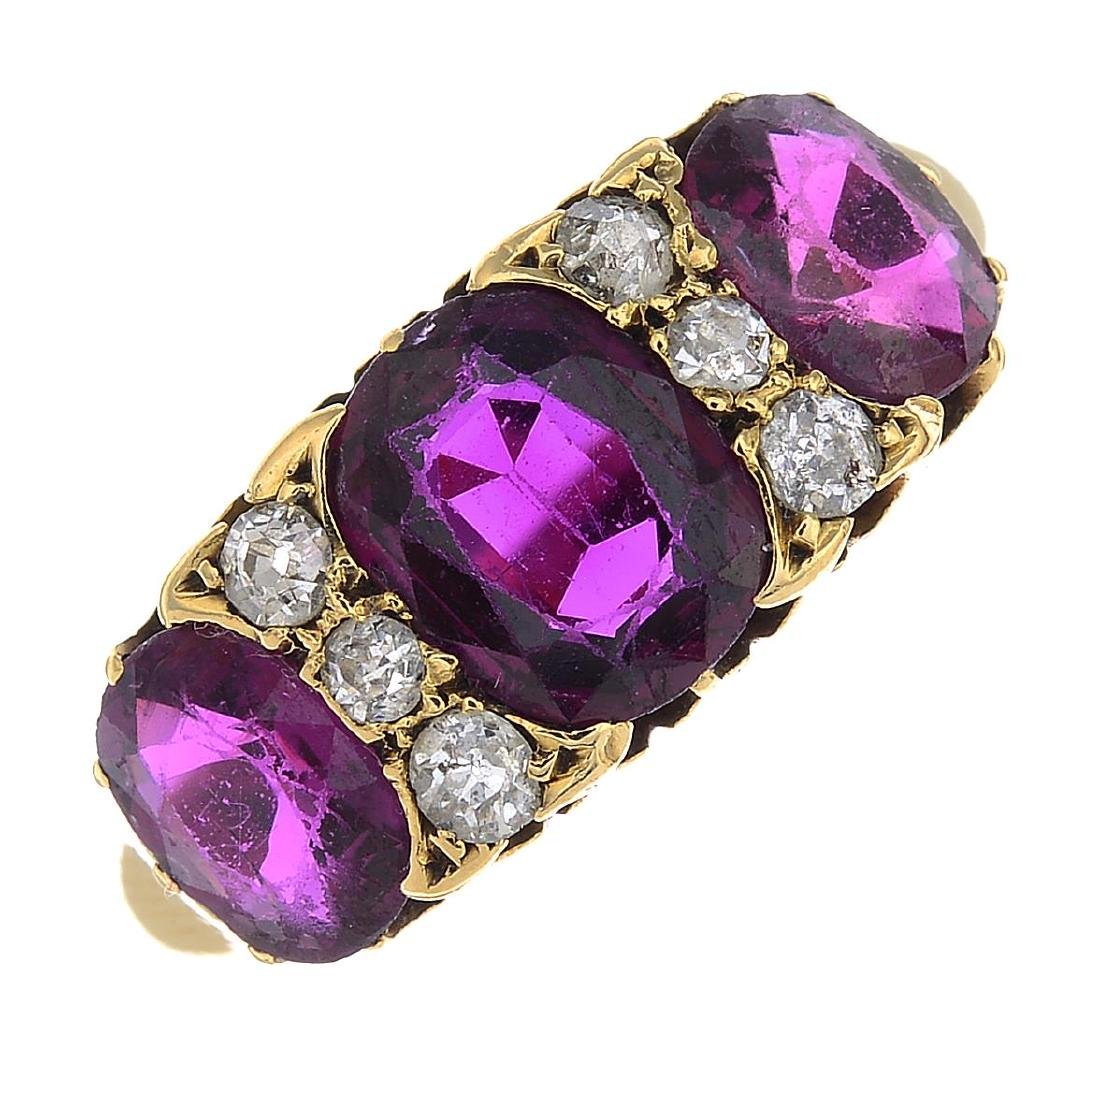 A late Victorian 18ct gold Thai ruby three-stone and